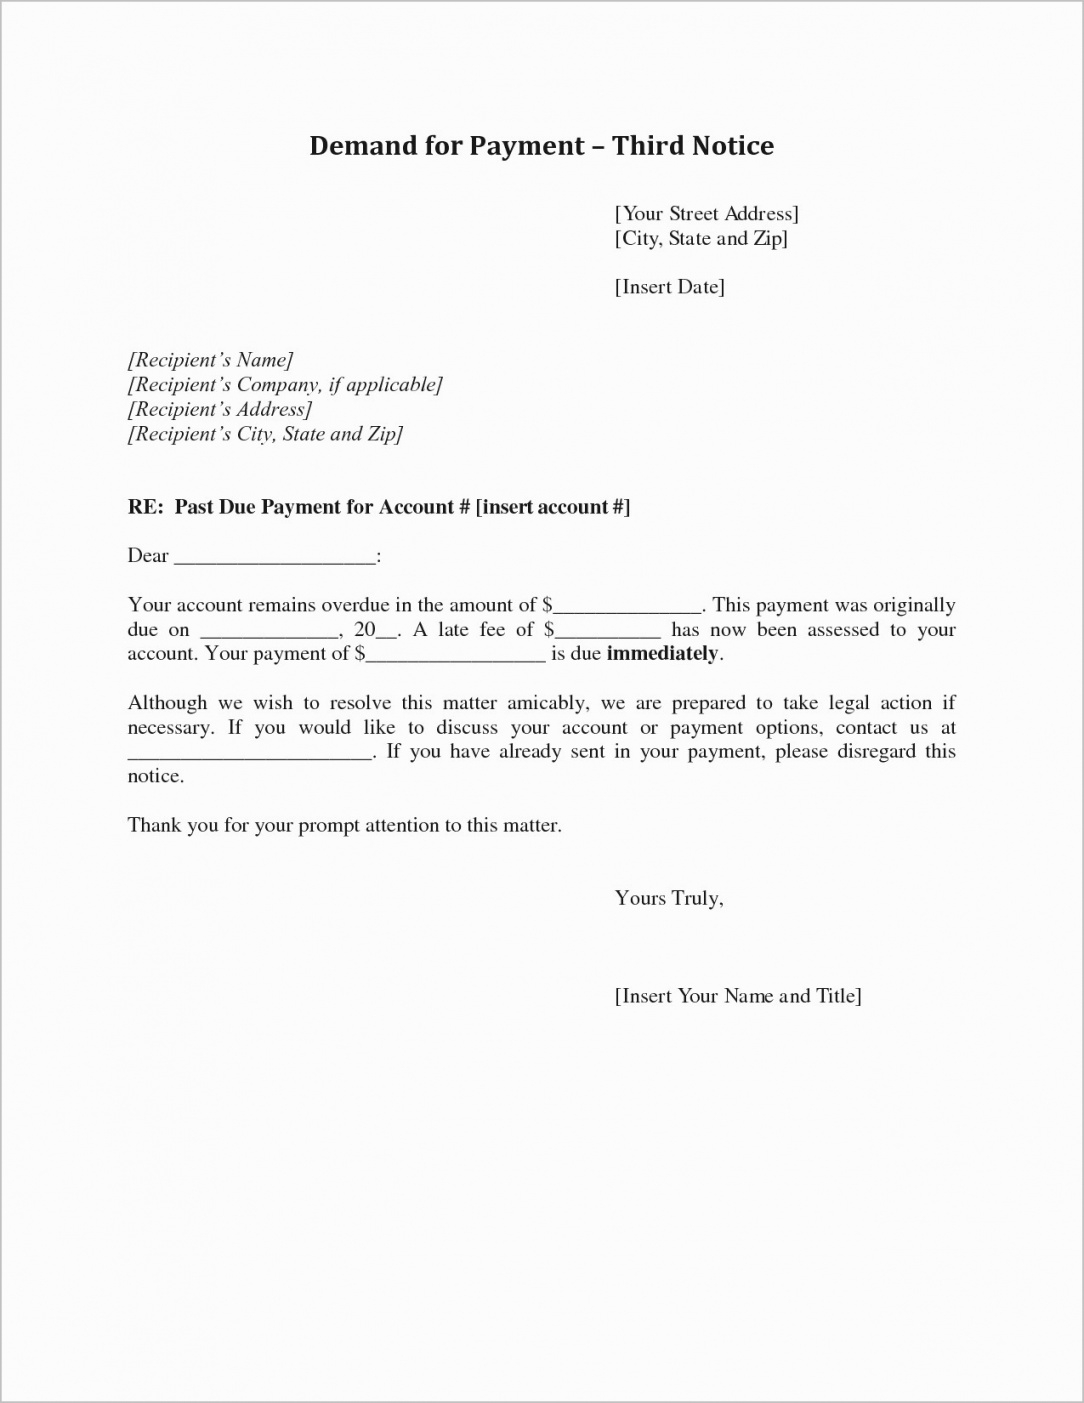 printable sample demand letter for unpaid rent  beertest past due rent demand letter template